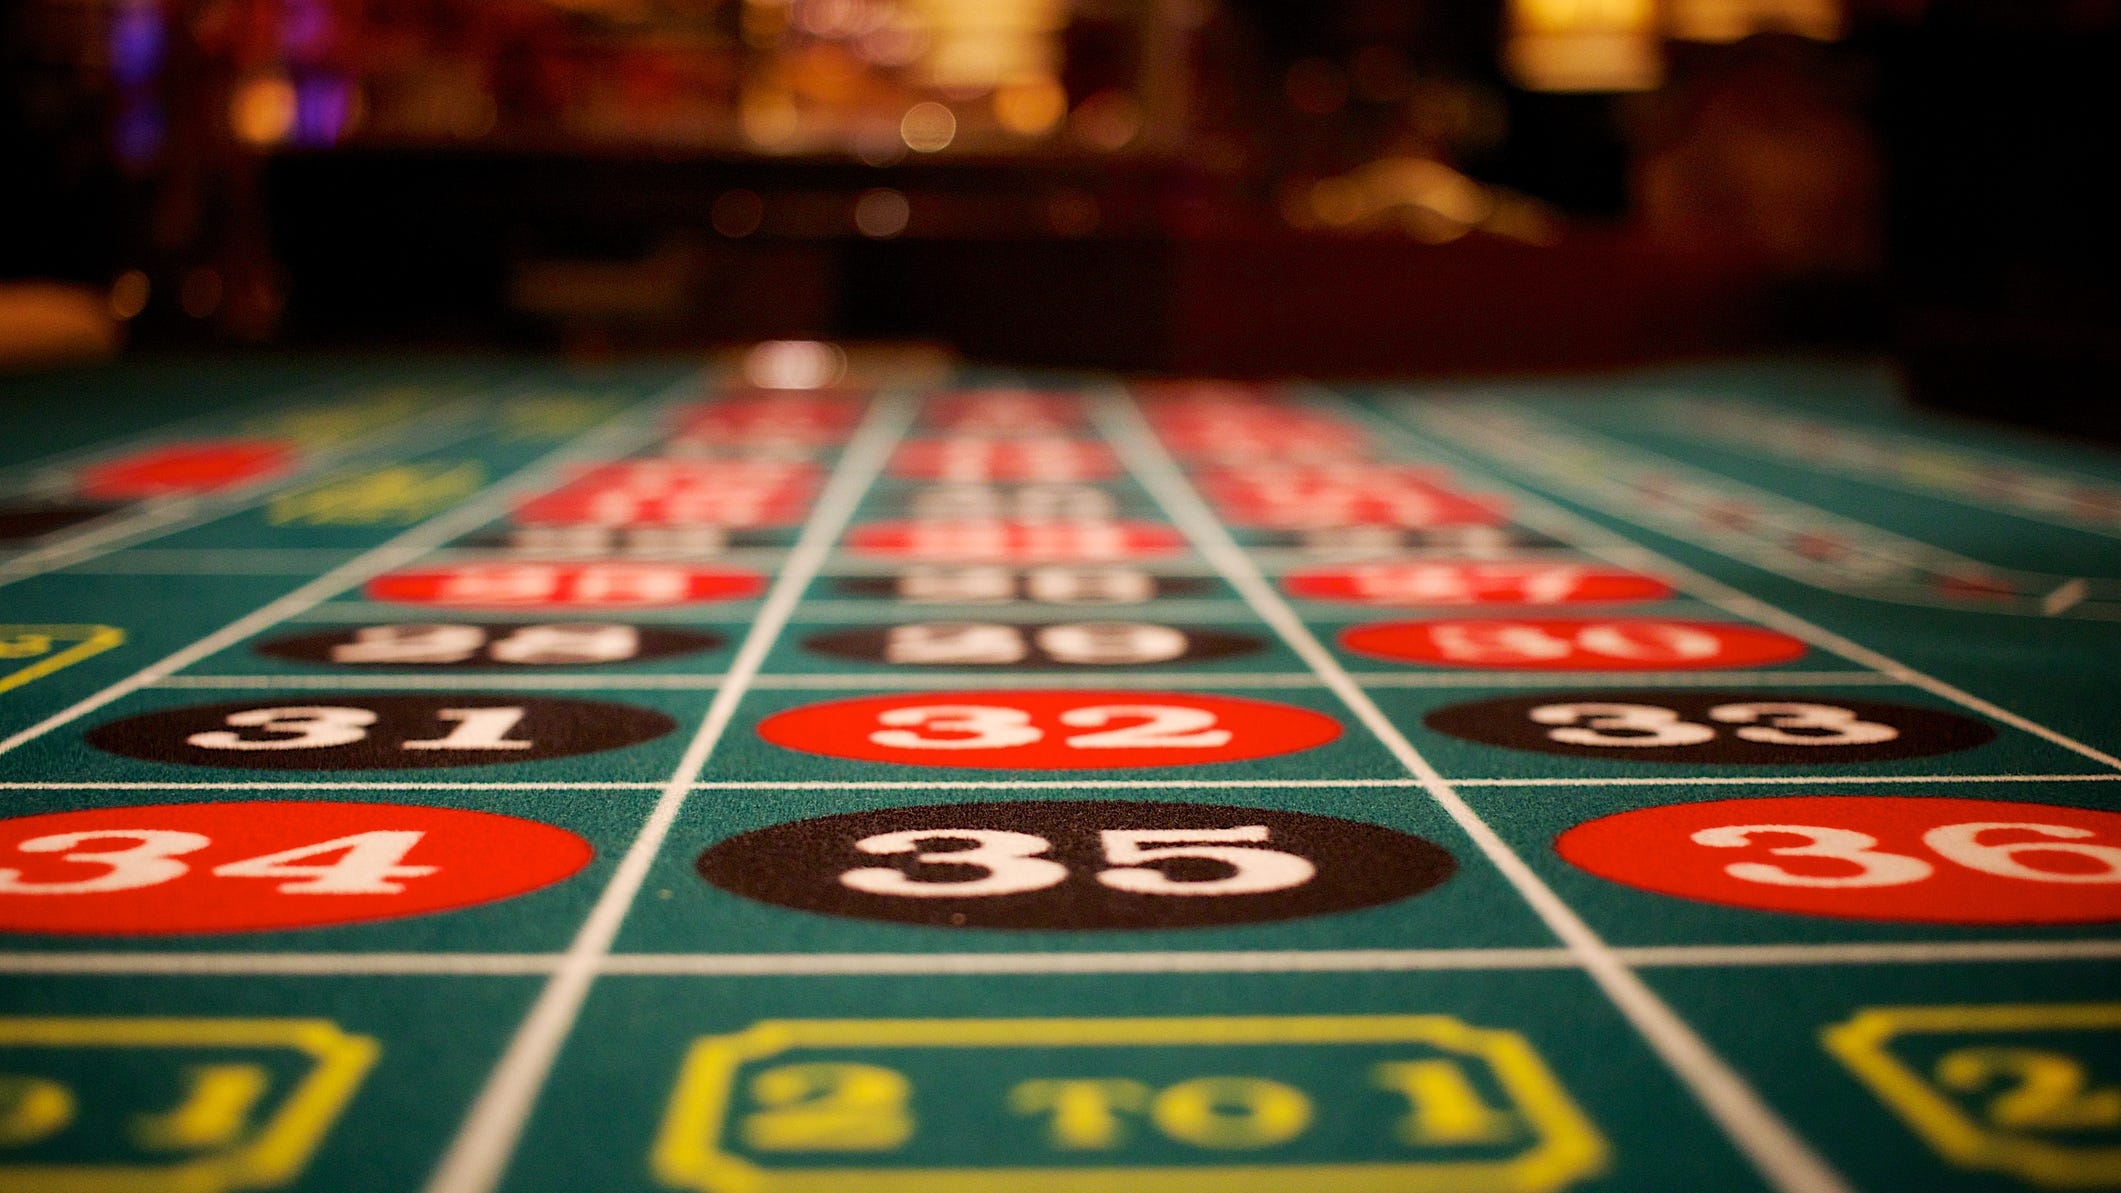 Man pleads guilty to scamming $9M in relief funds, gambling the money in Las Vegas